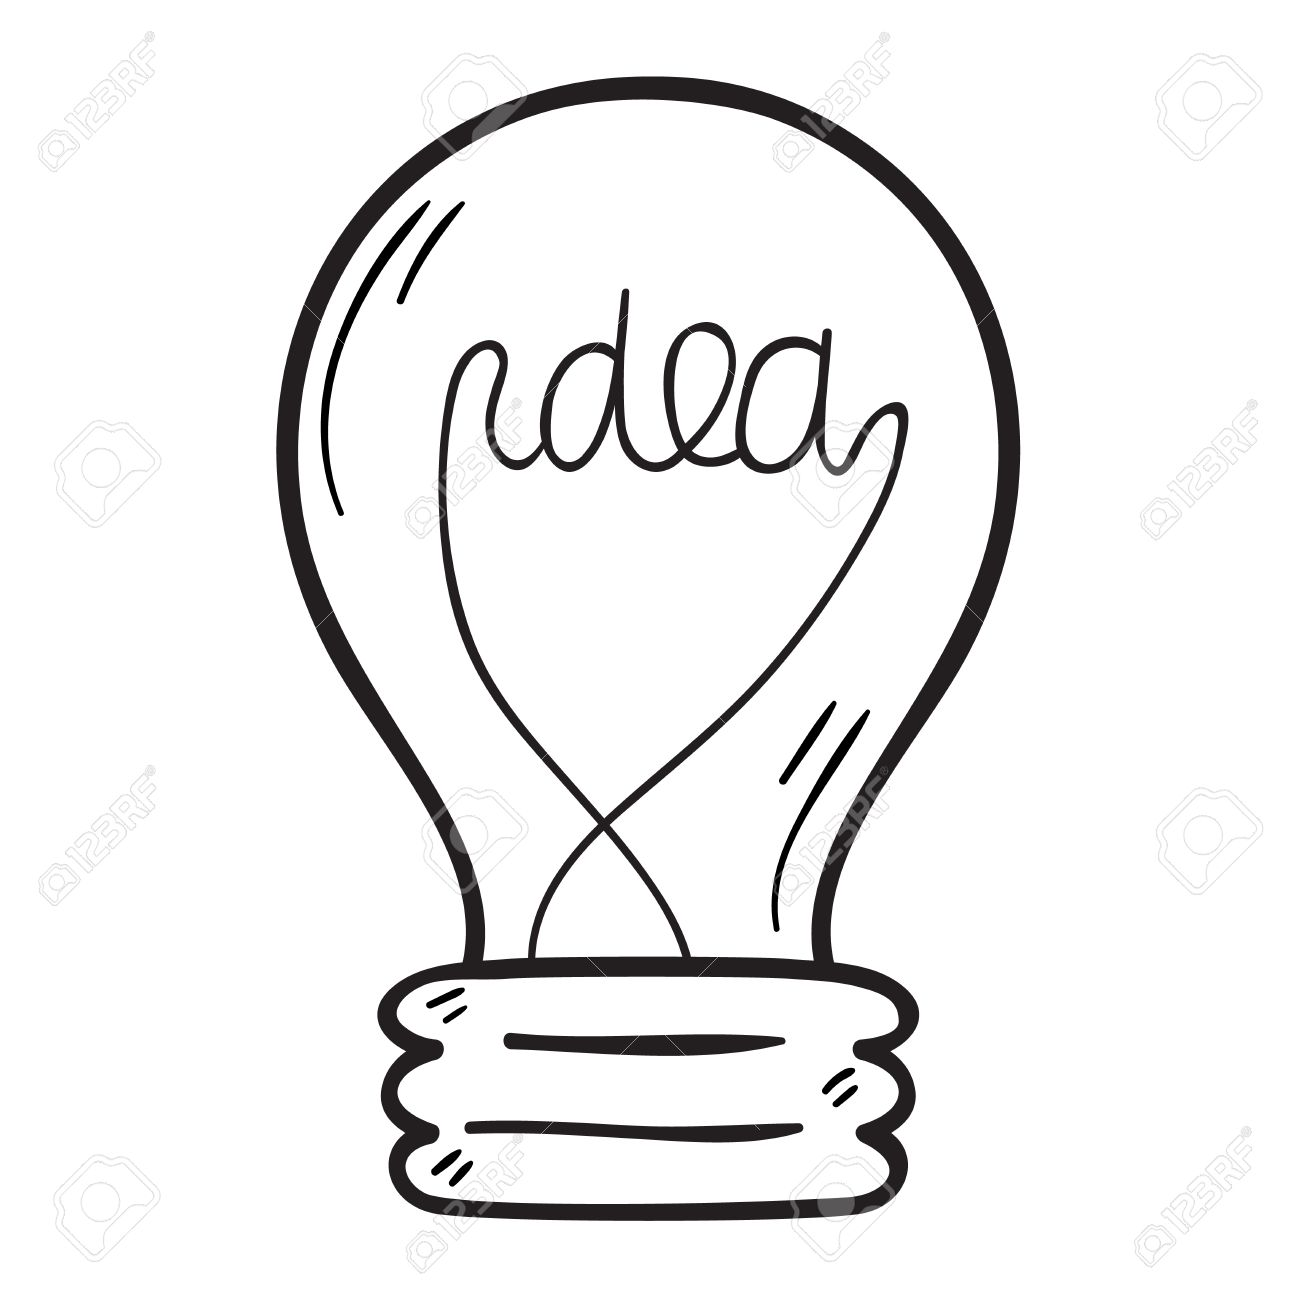 1297x1300 Drawing Idea Light Bulb Concept Creative Design. Vector Idea Lamp